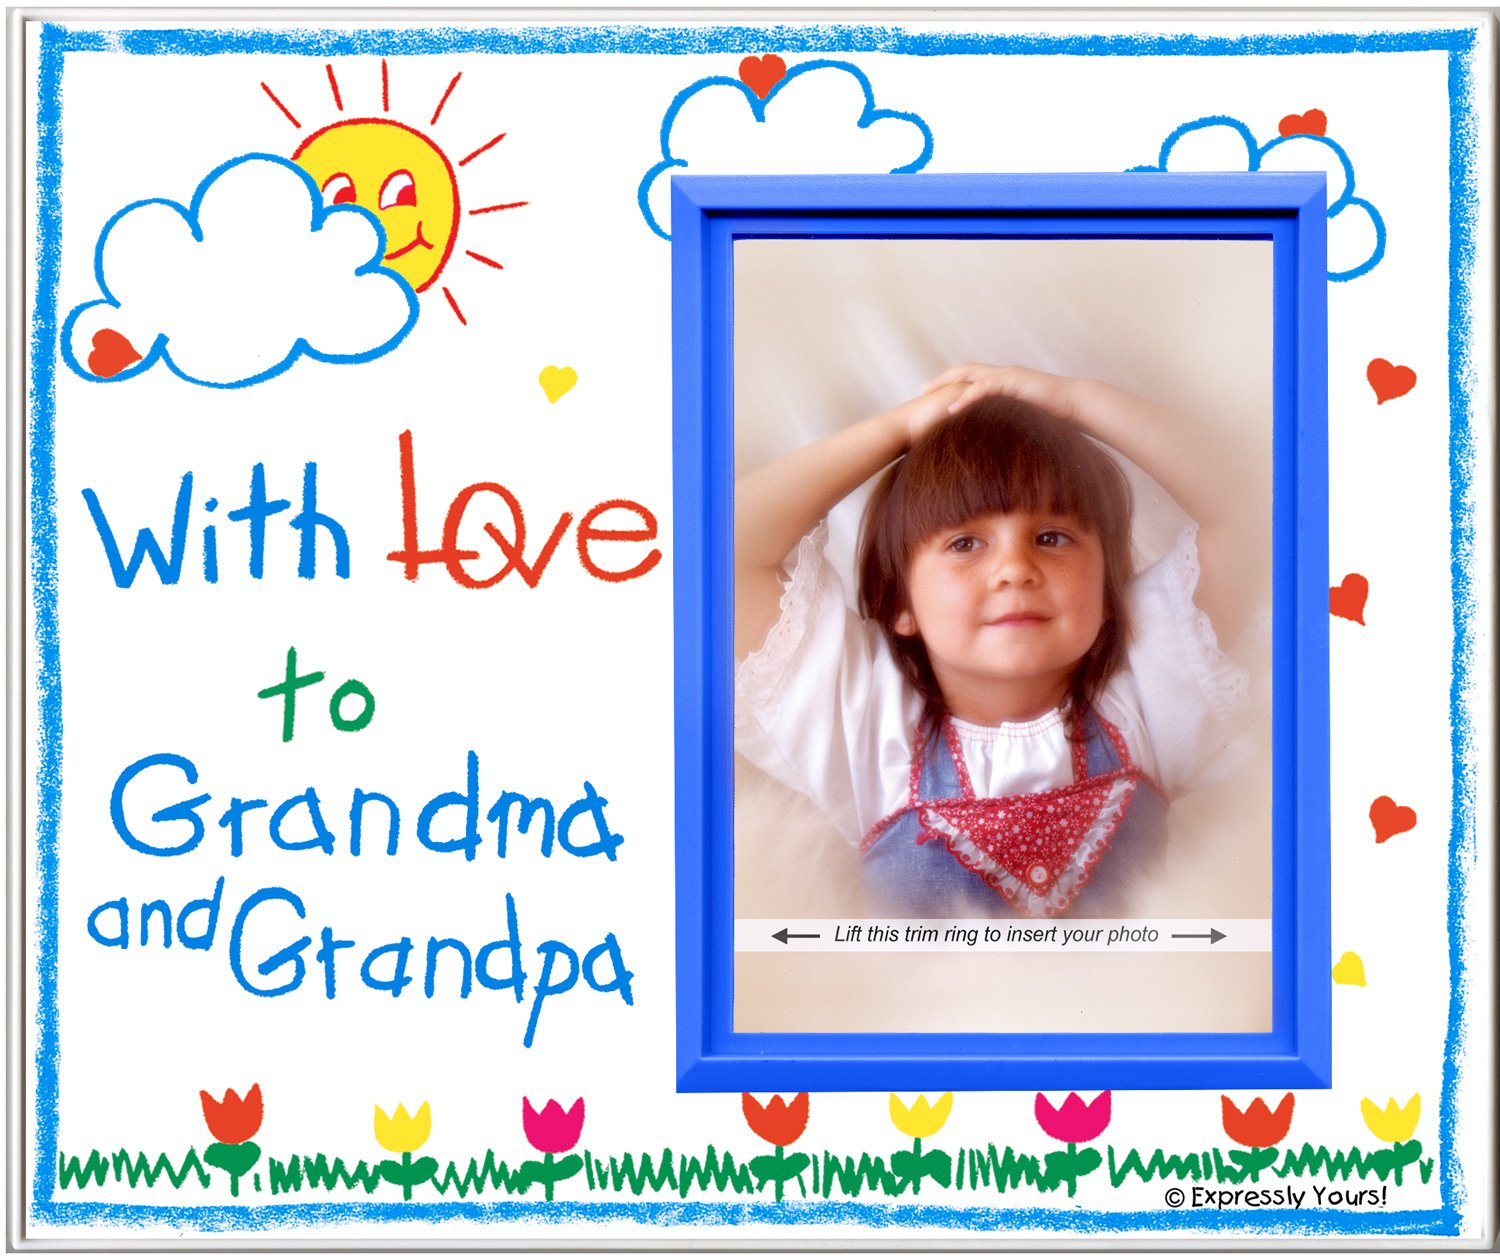 Amazon.com: With Love to Grandma - Picture Frame Gift: Baby